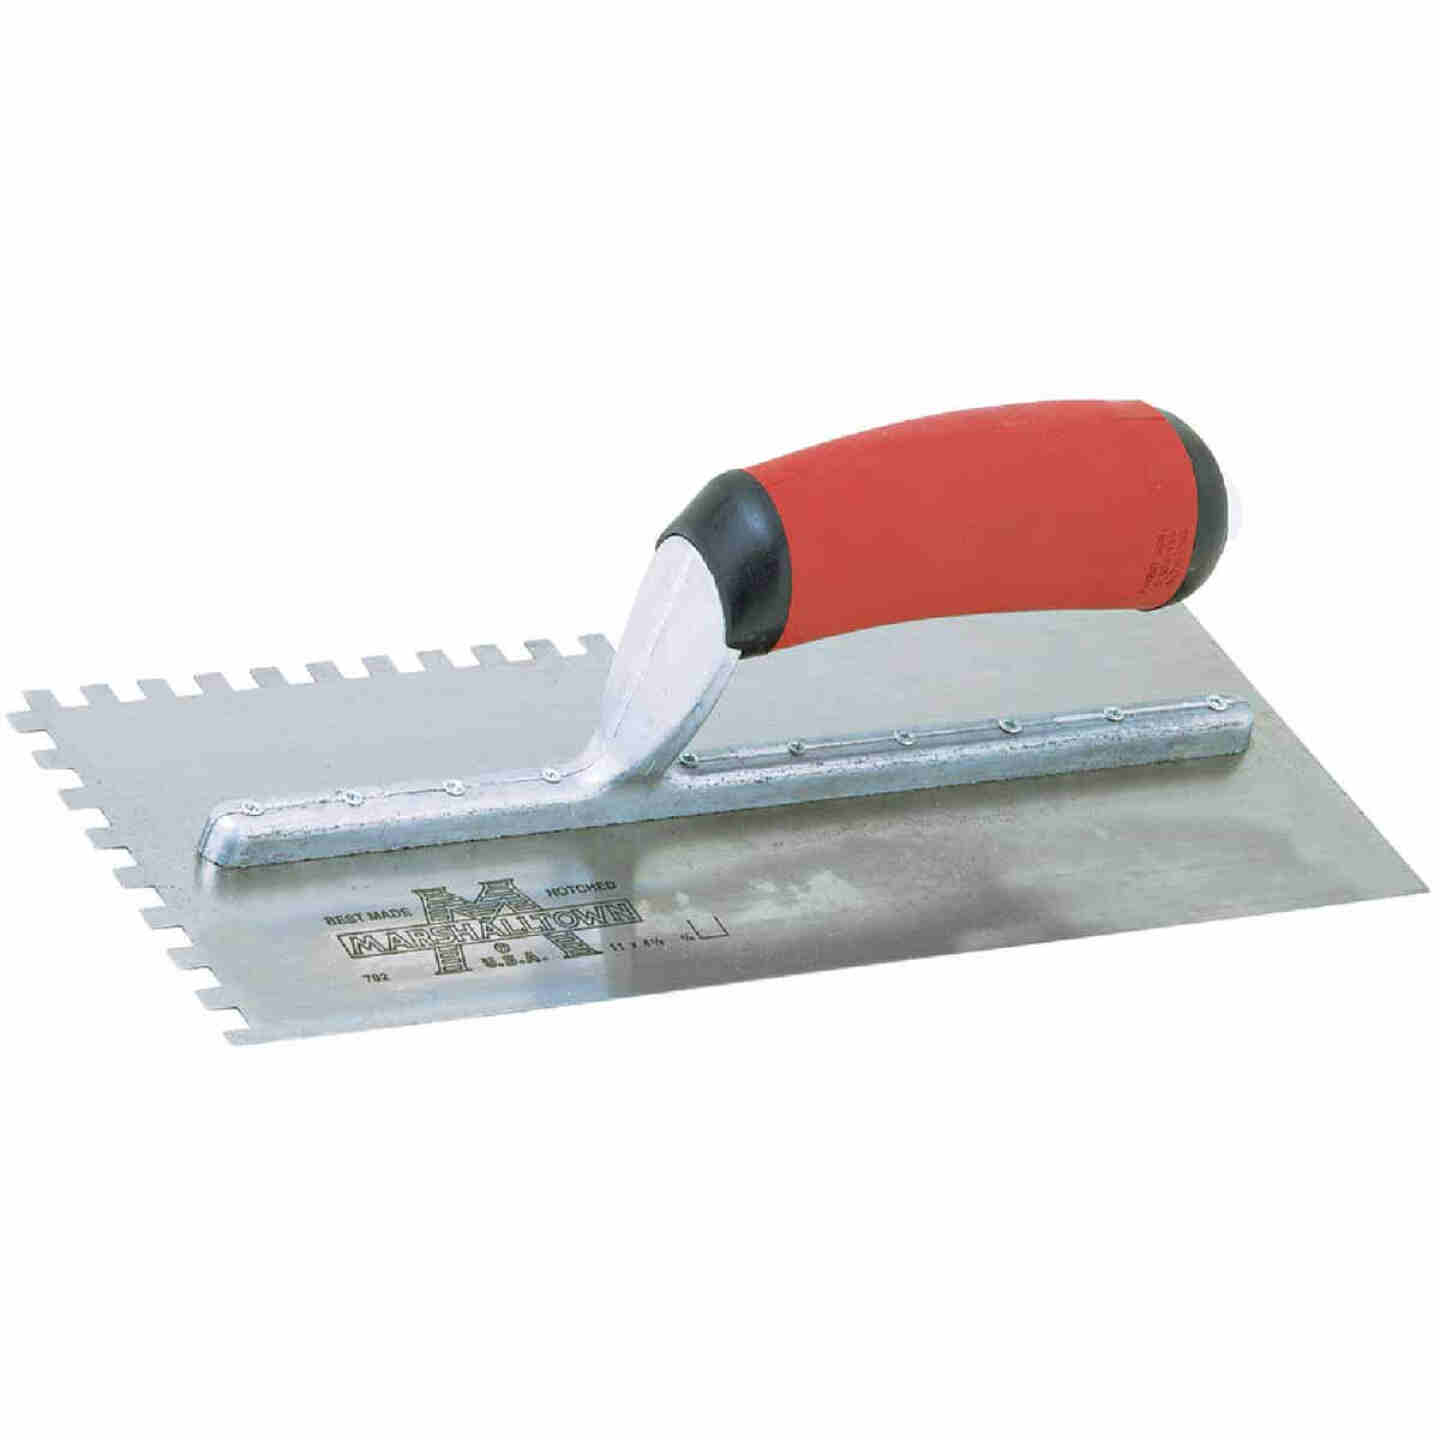 Marshalltown 1/4 In. Square Notched Trowel Image 1